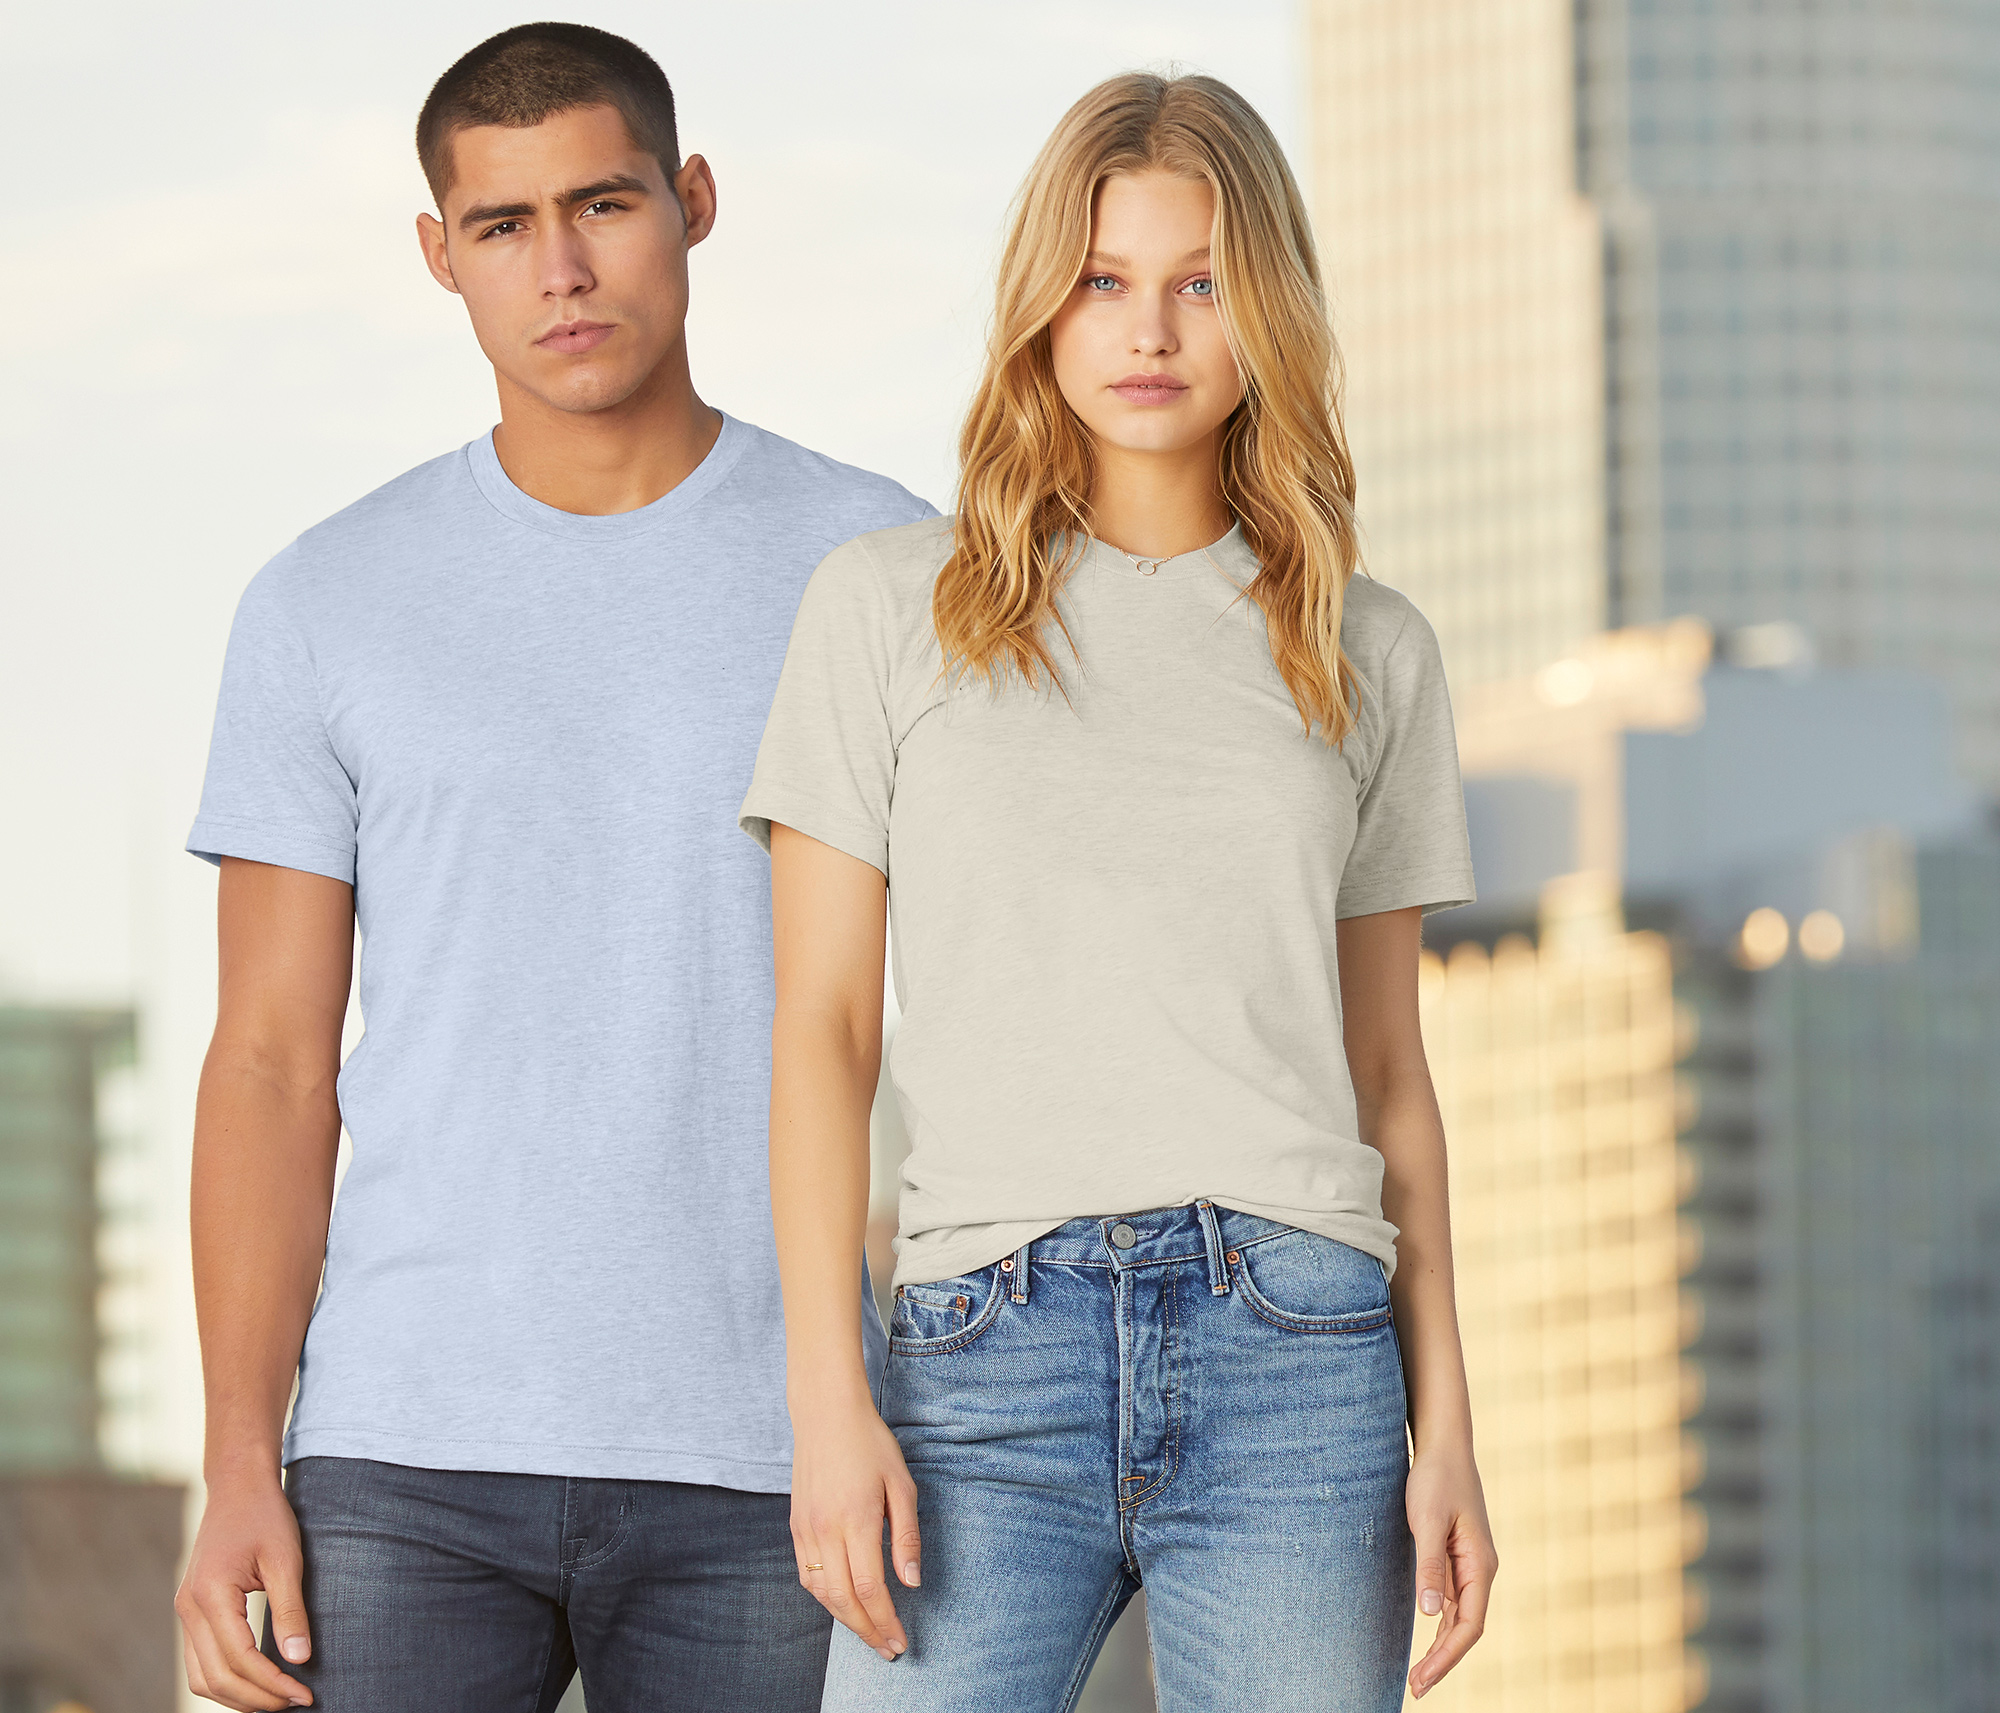 Bella+Canvas Unisex Heather CVC Jersey Tee - 3001CVC